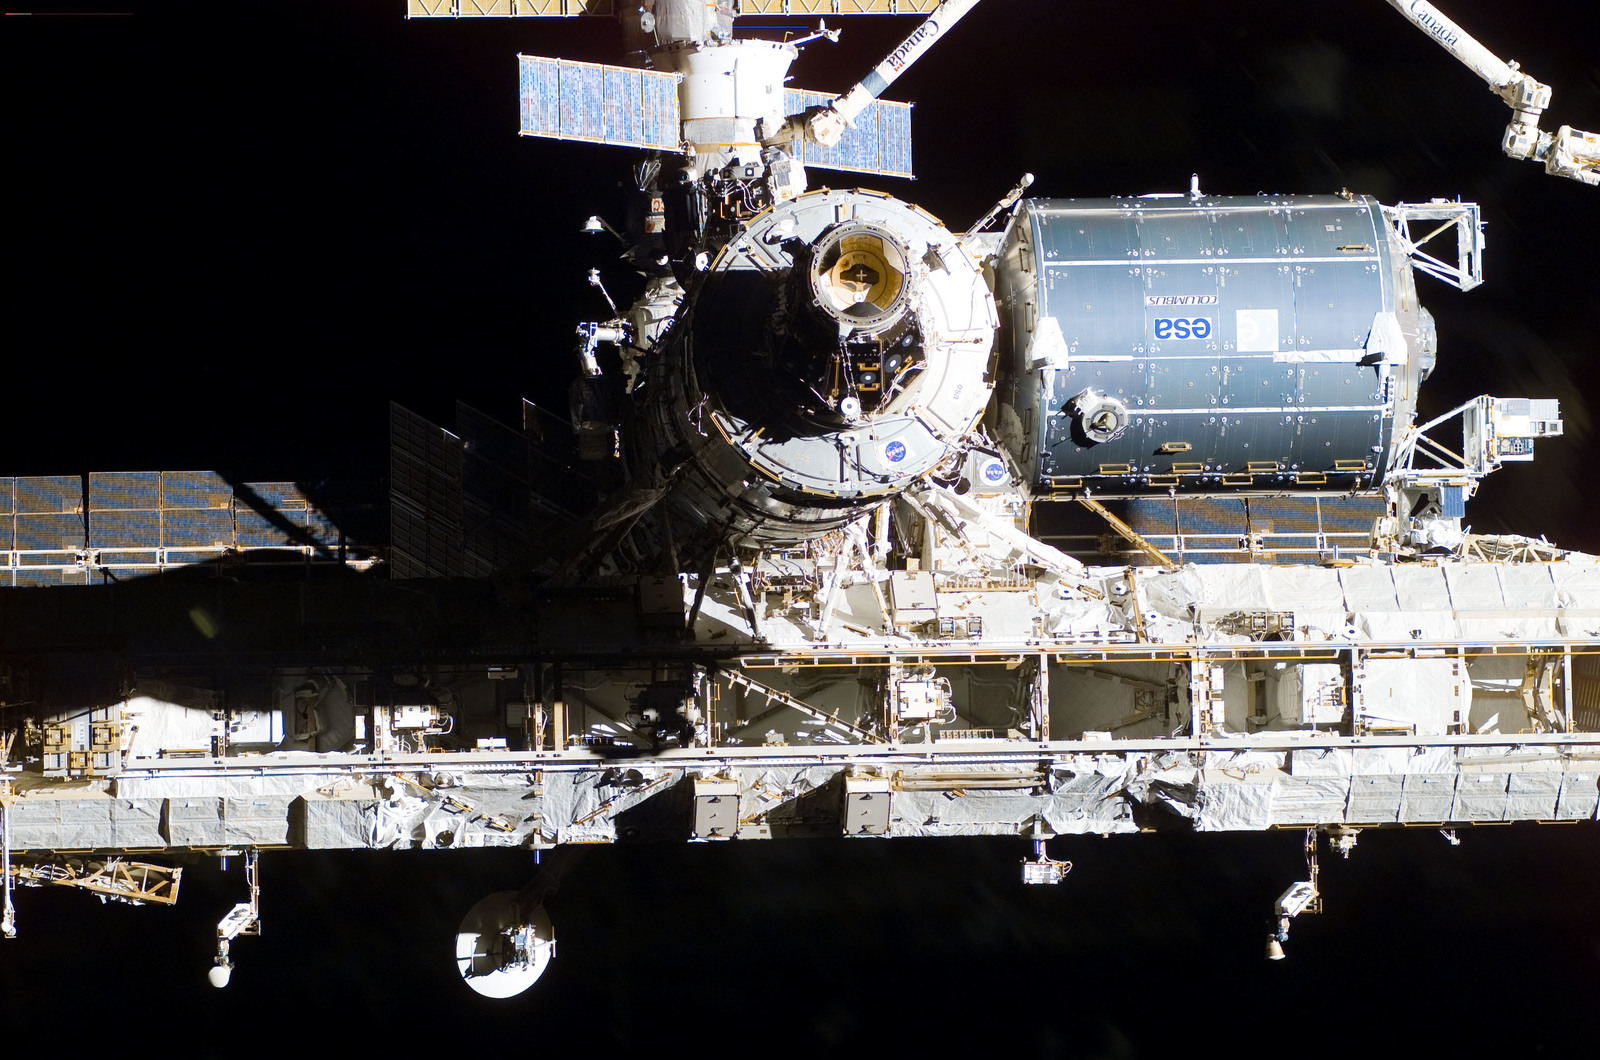 S122E009943 - STS-122 - Flyaround view of ISS after STS-122 Undocking